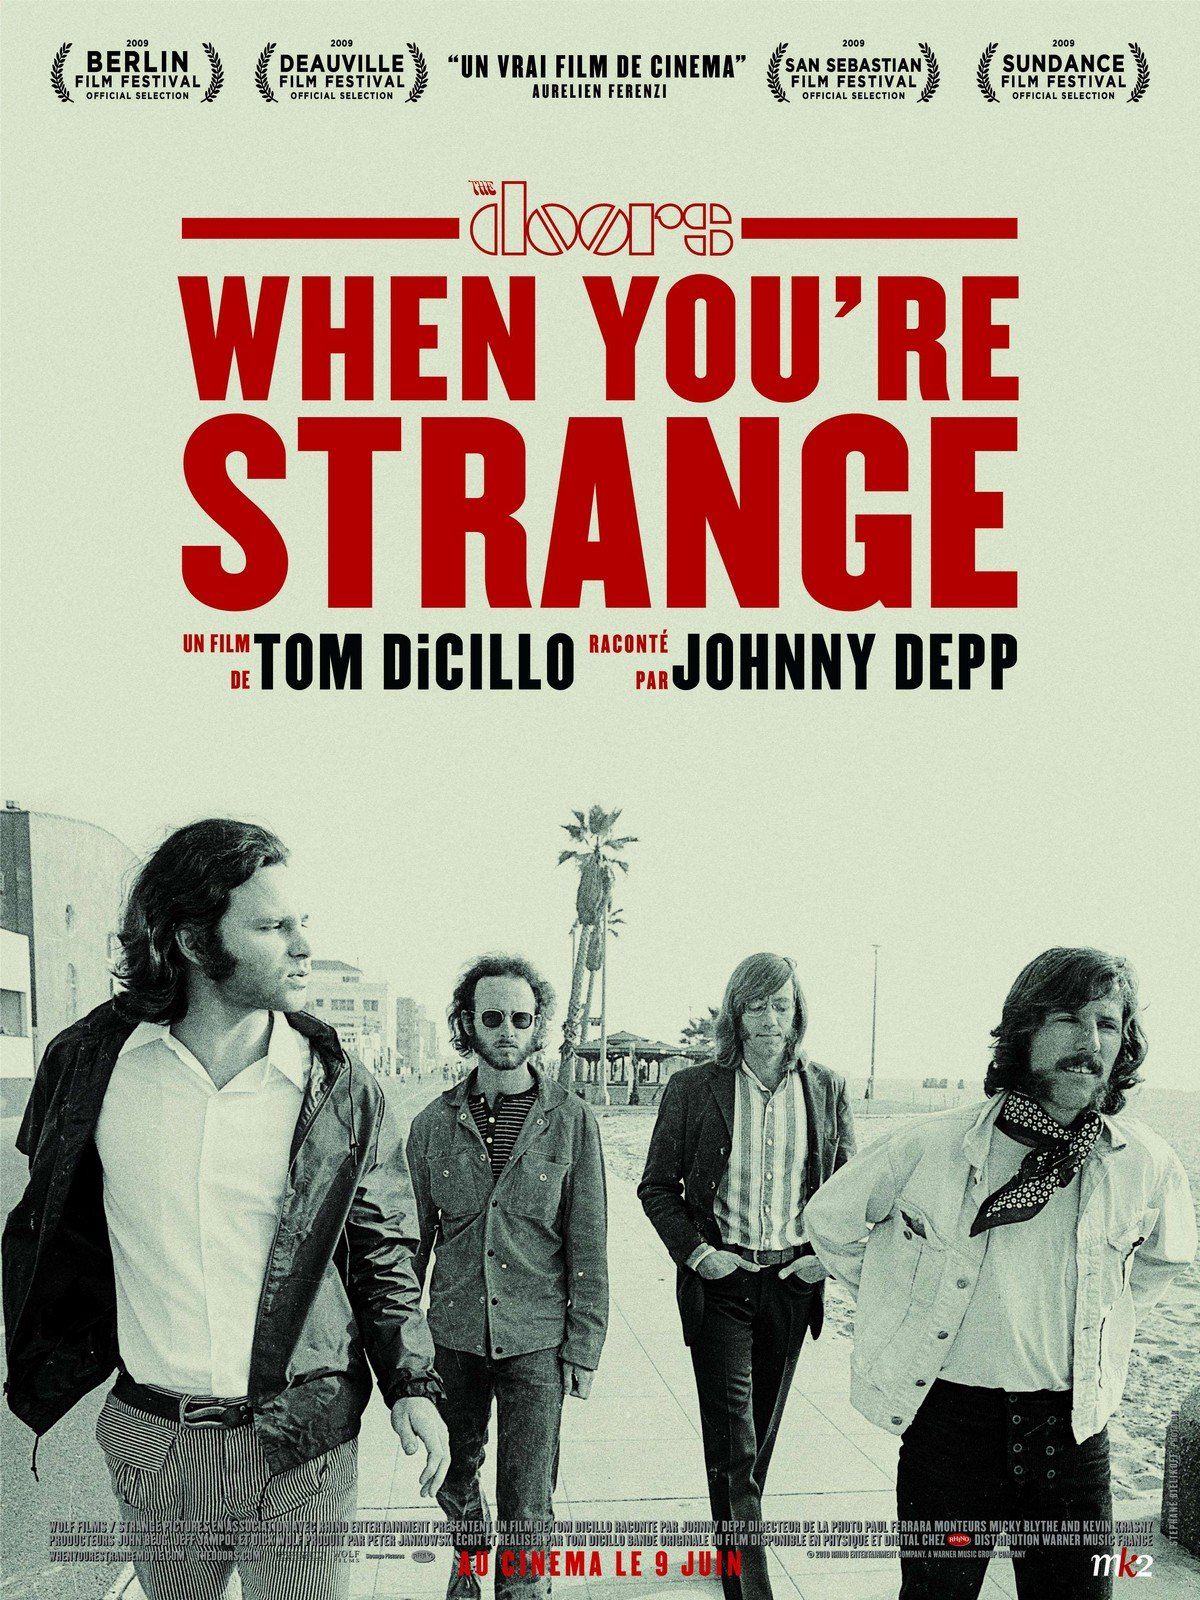 sc 1 st  Documentary Storm & When You\u0027re Strange | Watch Documentary Online for Free